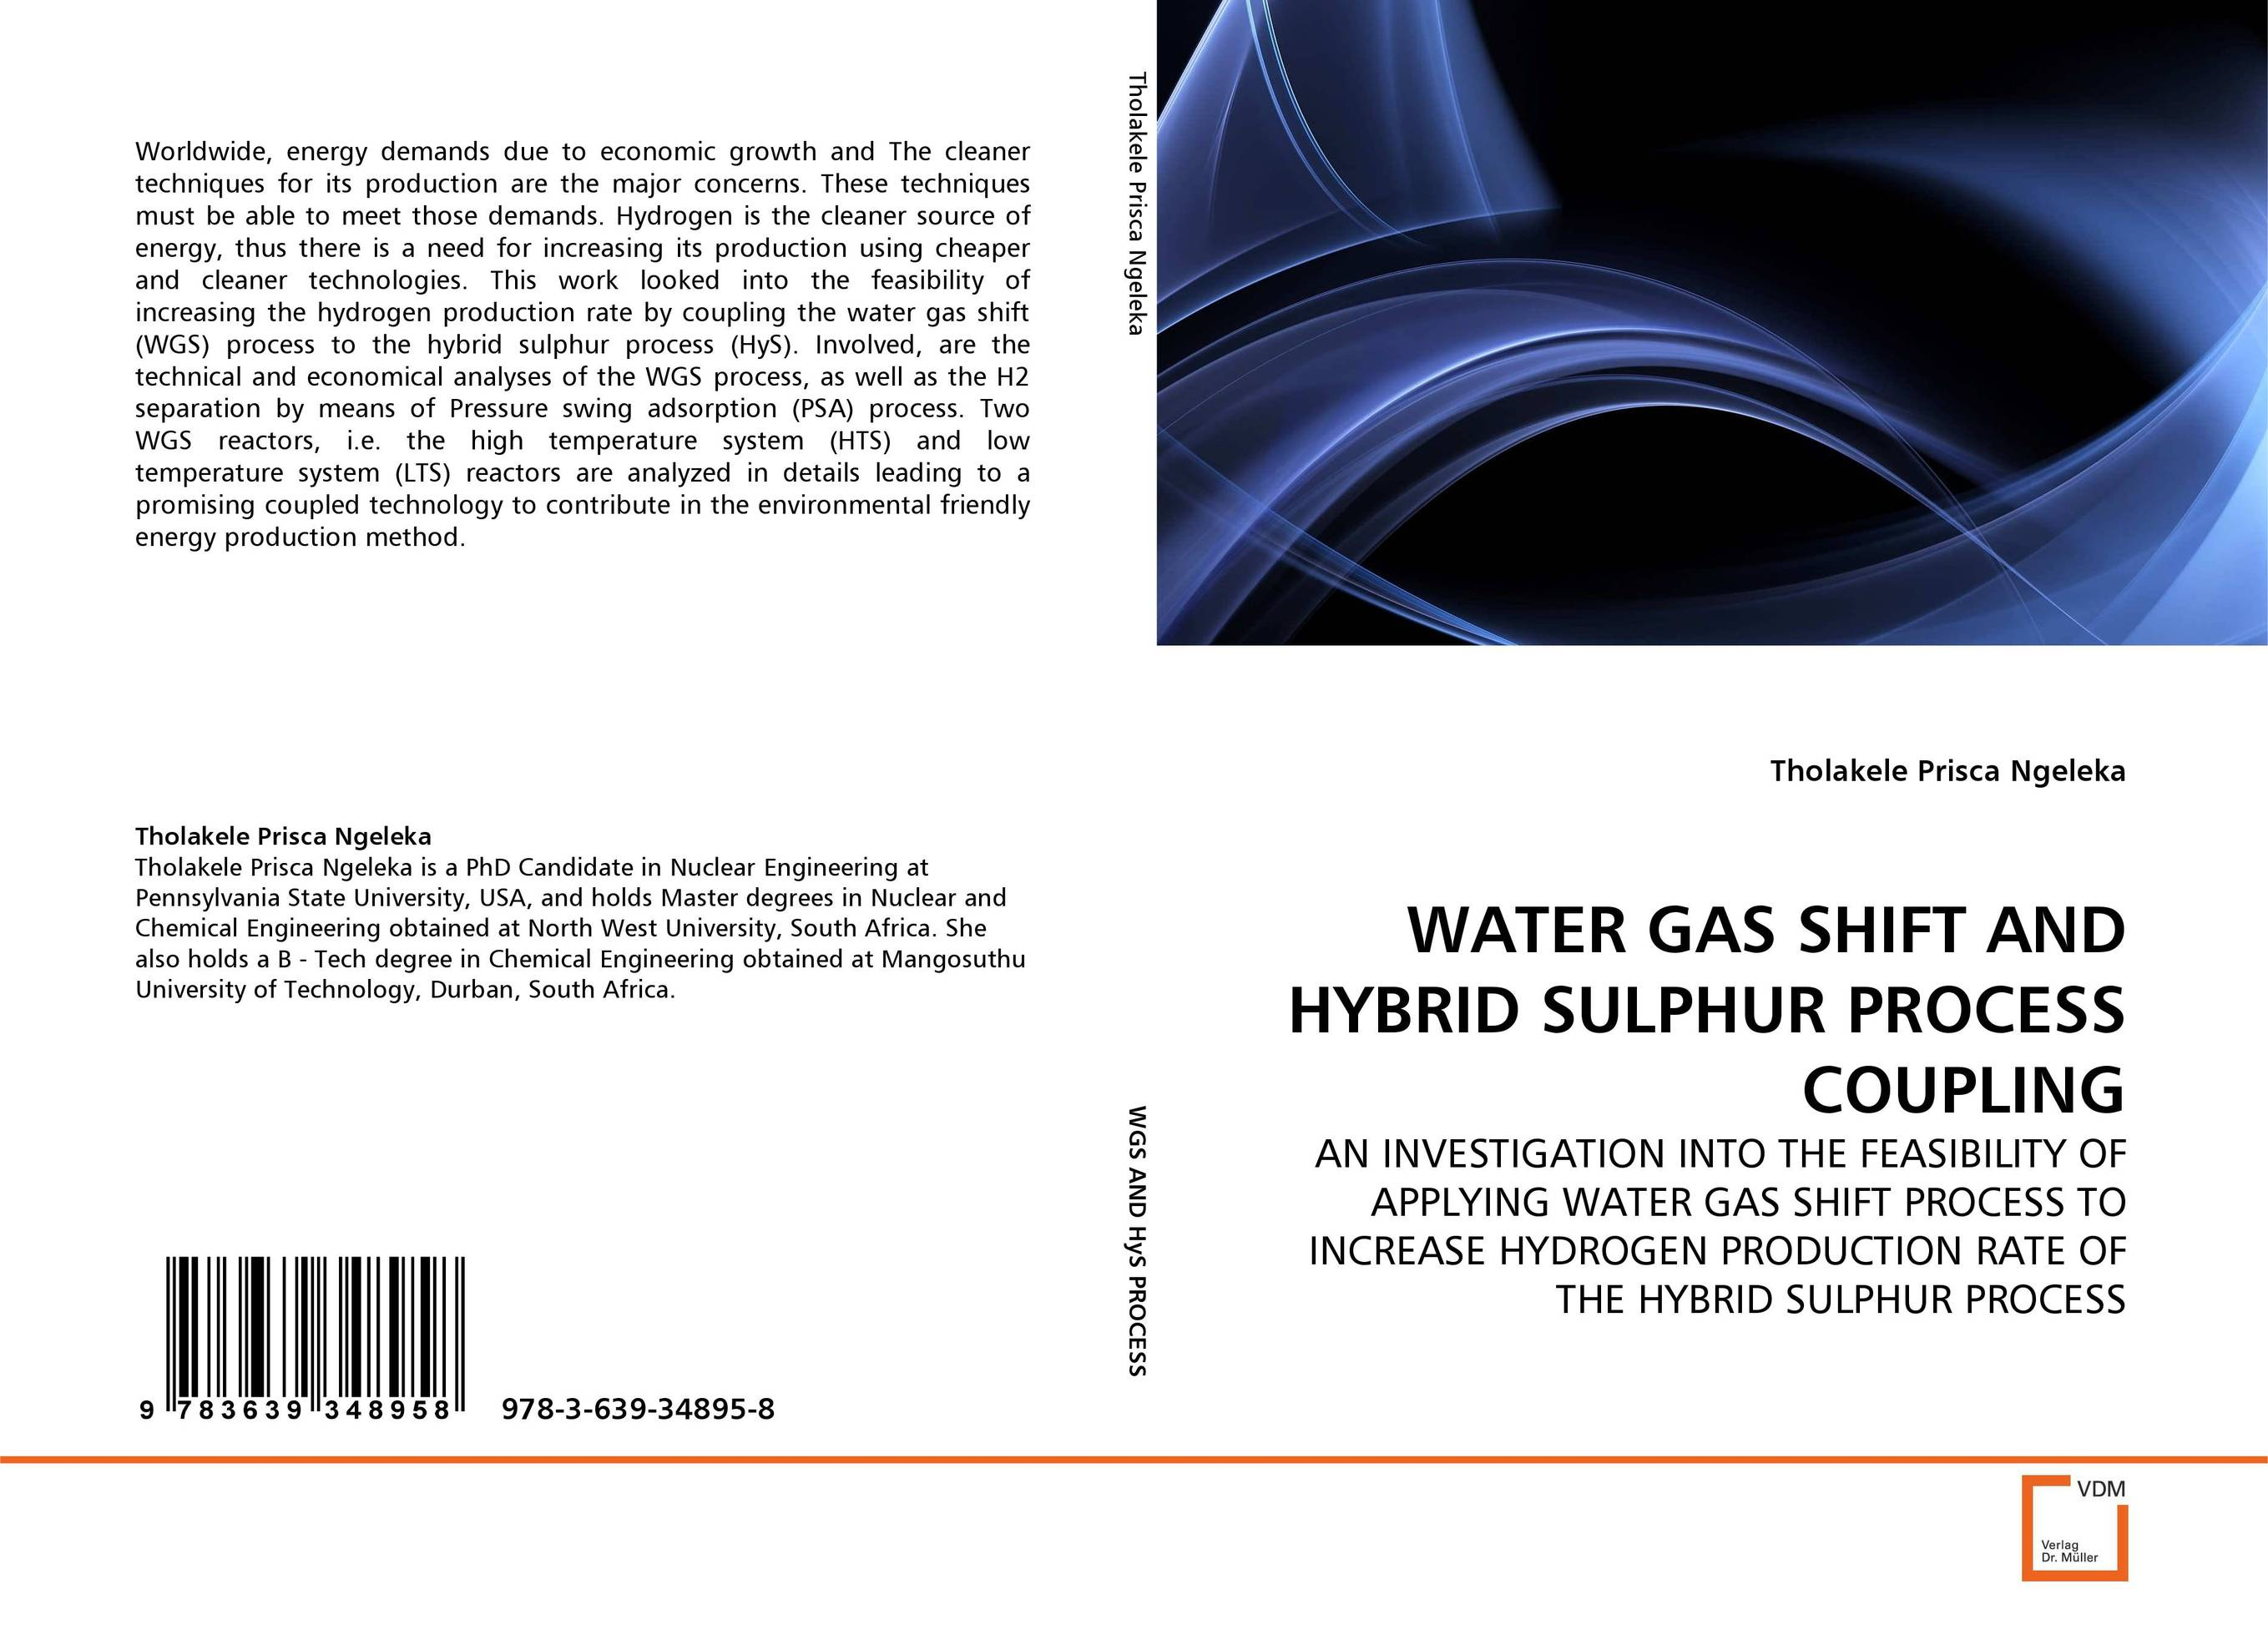 WATER GAS SHIFT AND HYBRID SULPHUR PROCESS COUPLING 260ml rechargeable rich hydrogen water generator electrolysis energy hydrogen rich antioxidant orp h2 water ionizer glass bottle